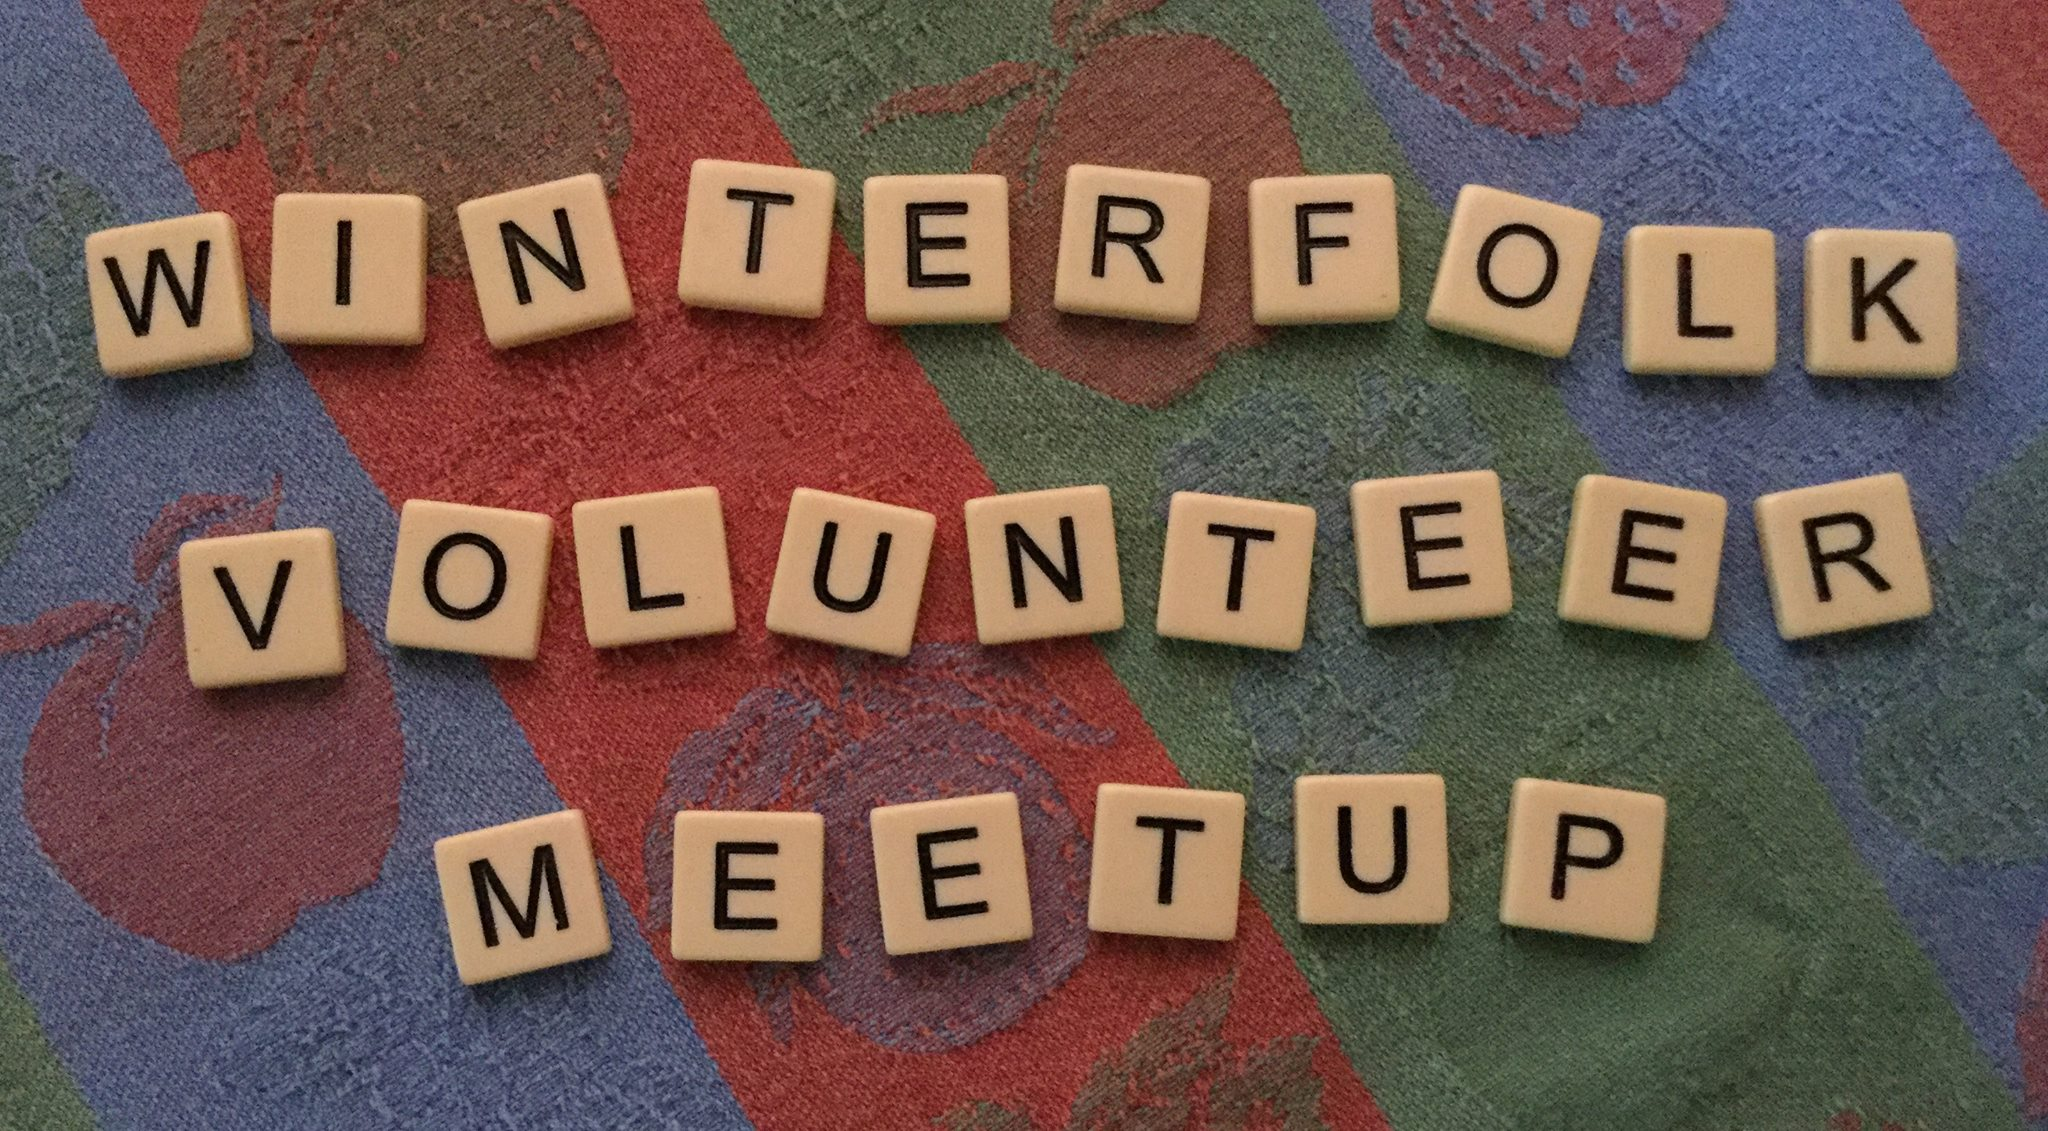 Winterfolk Volunteer Meetup Jan 6, 2018